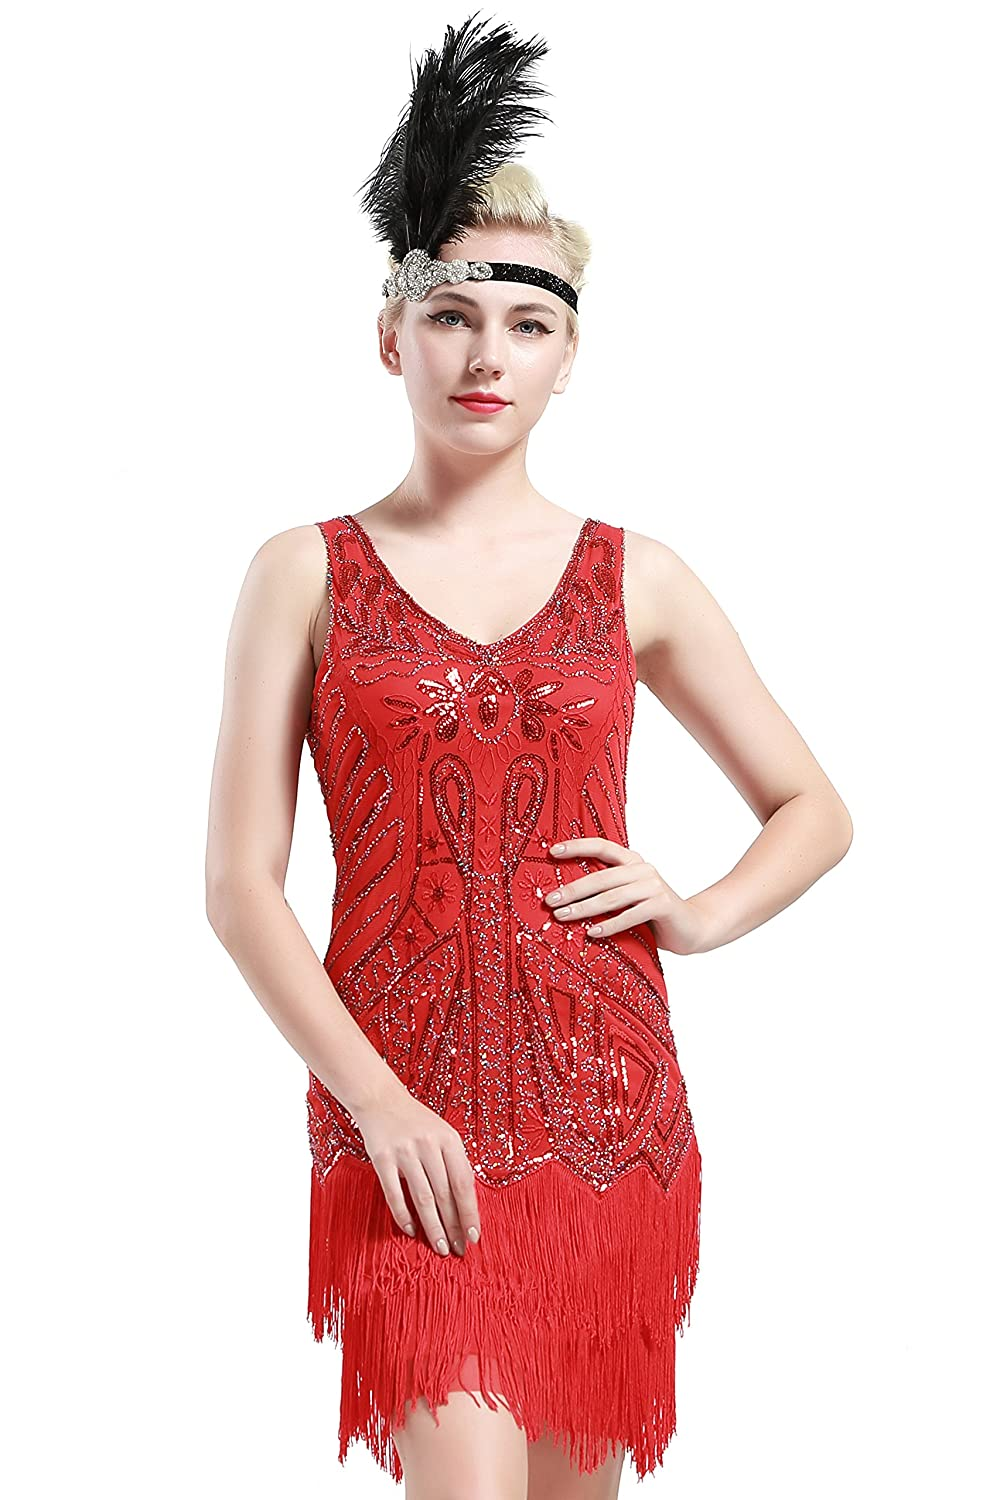 1920s Costumes: Flapper, Great Gatsby, Gangster Girl BABEYOND Womens Flapper Dresses 1920s V Neck Beaded Fringed Great Gatsby Dress $41.99 AT vintagedancer.com